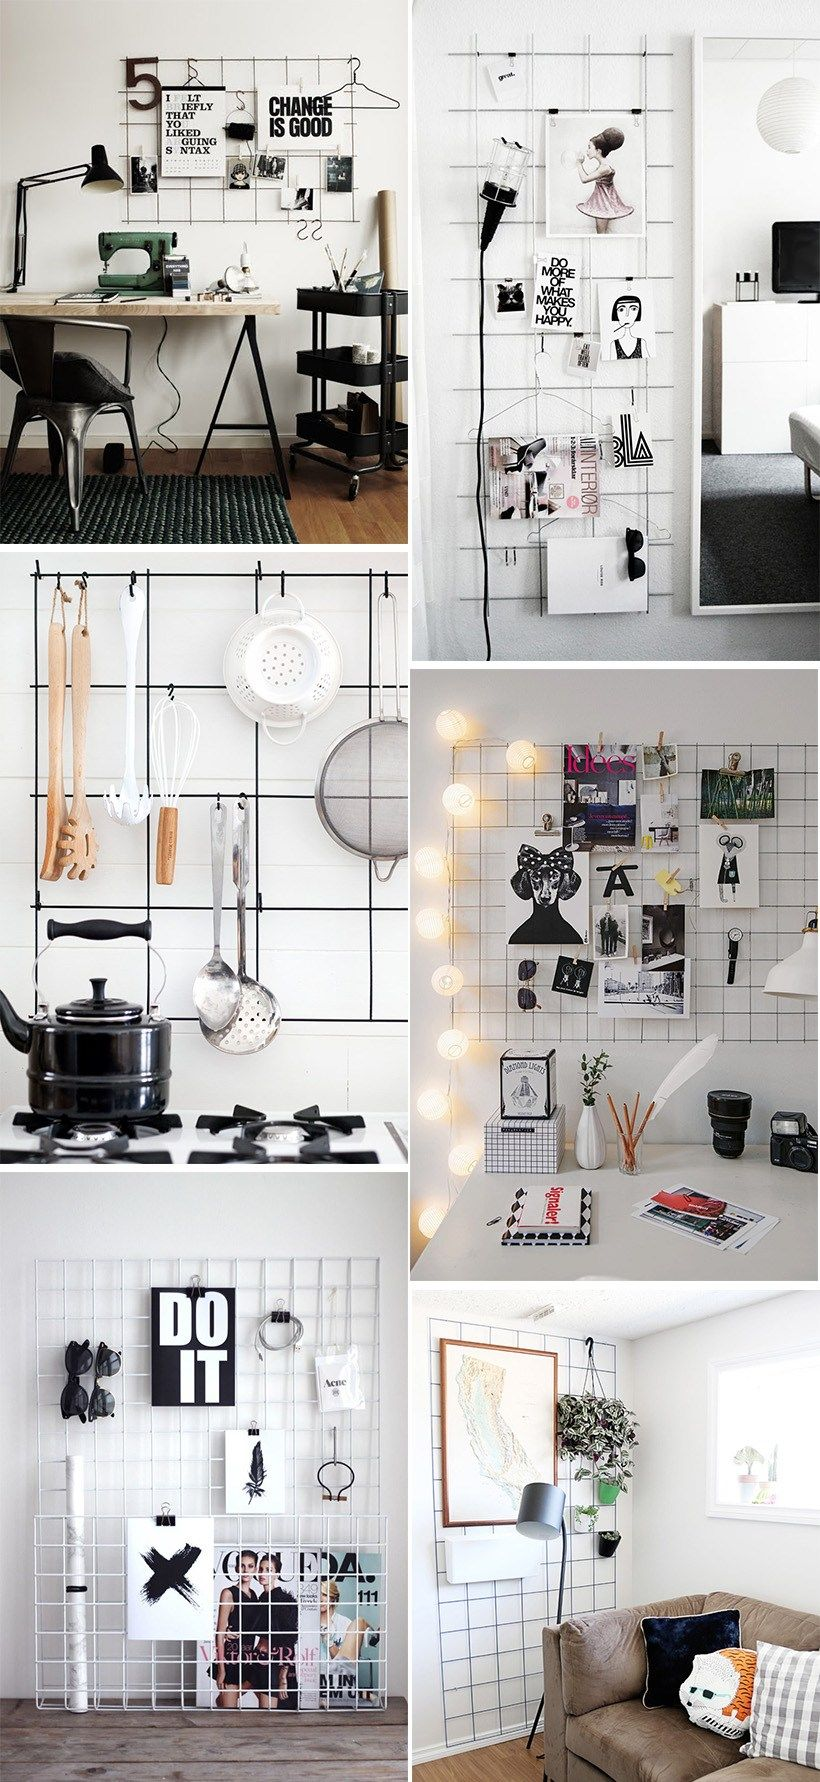 Diy inspiration metal grid dorm decor pinterest for Metallgitter deko